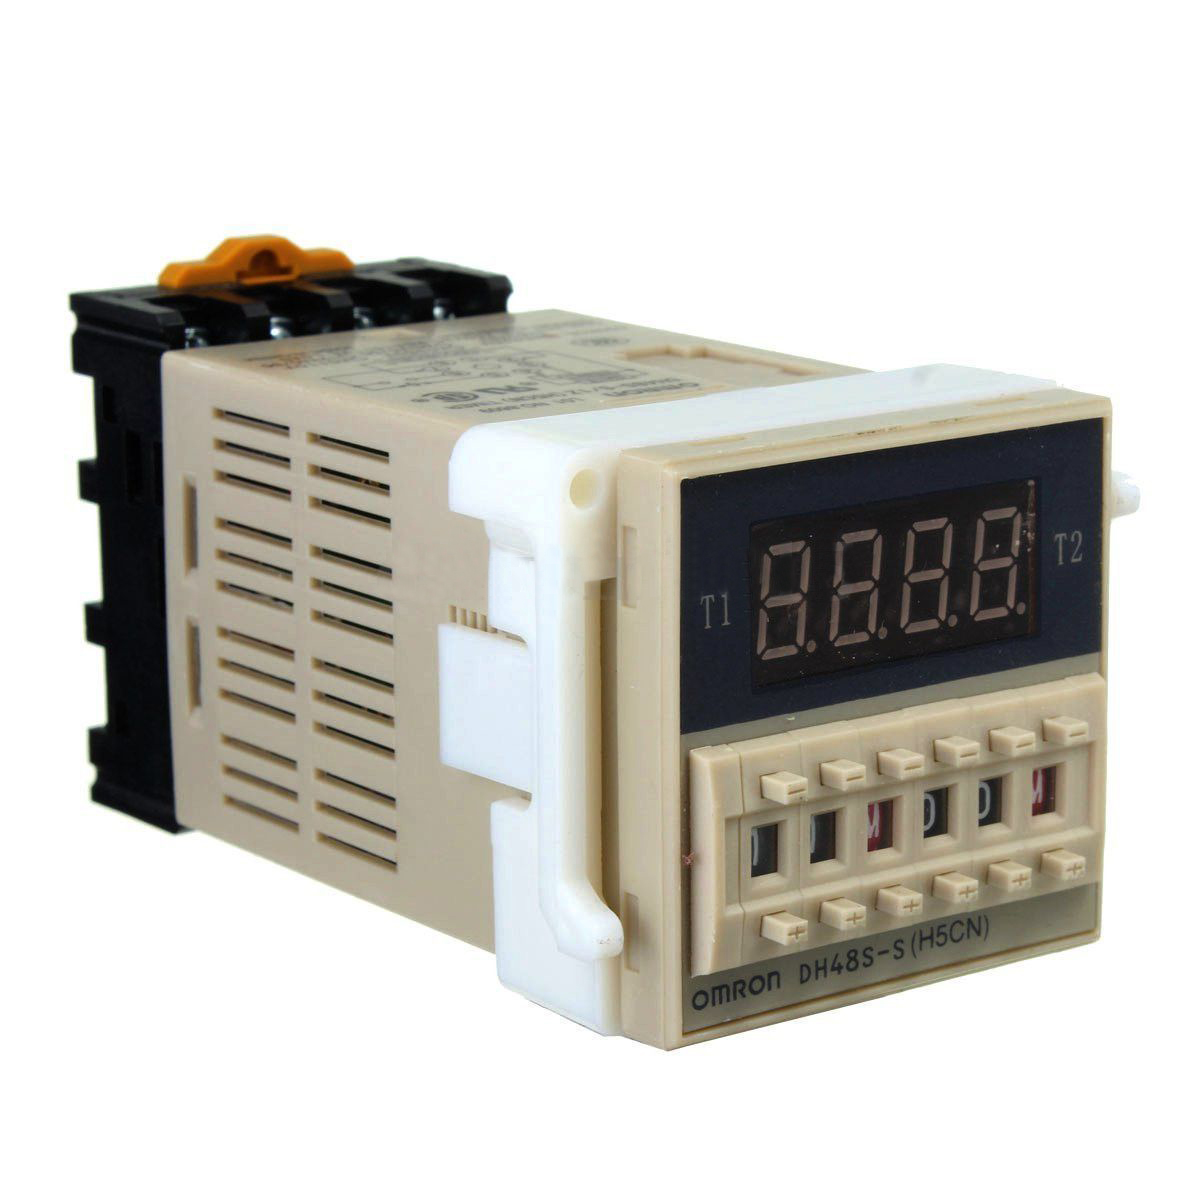 AC 220V 5A Programmable Double Time Timer Delay Relay Device Tool DH48S-S  Dropshipping